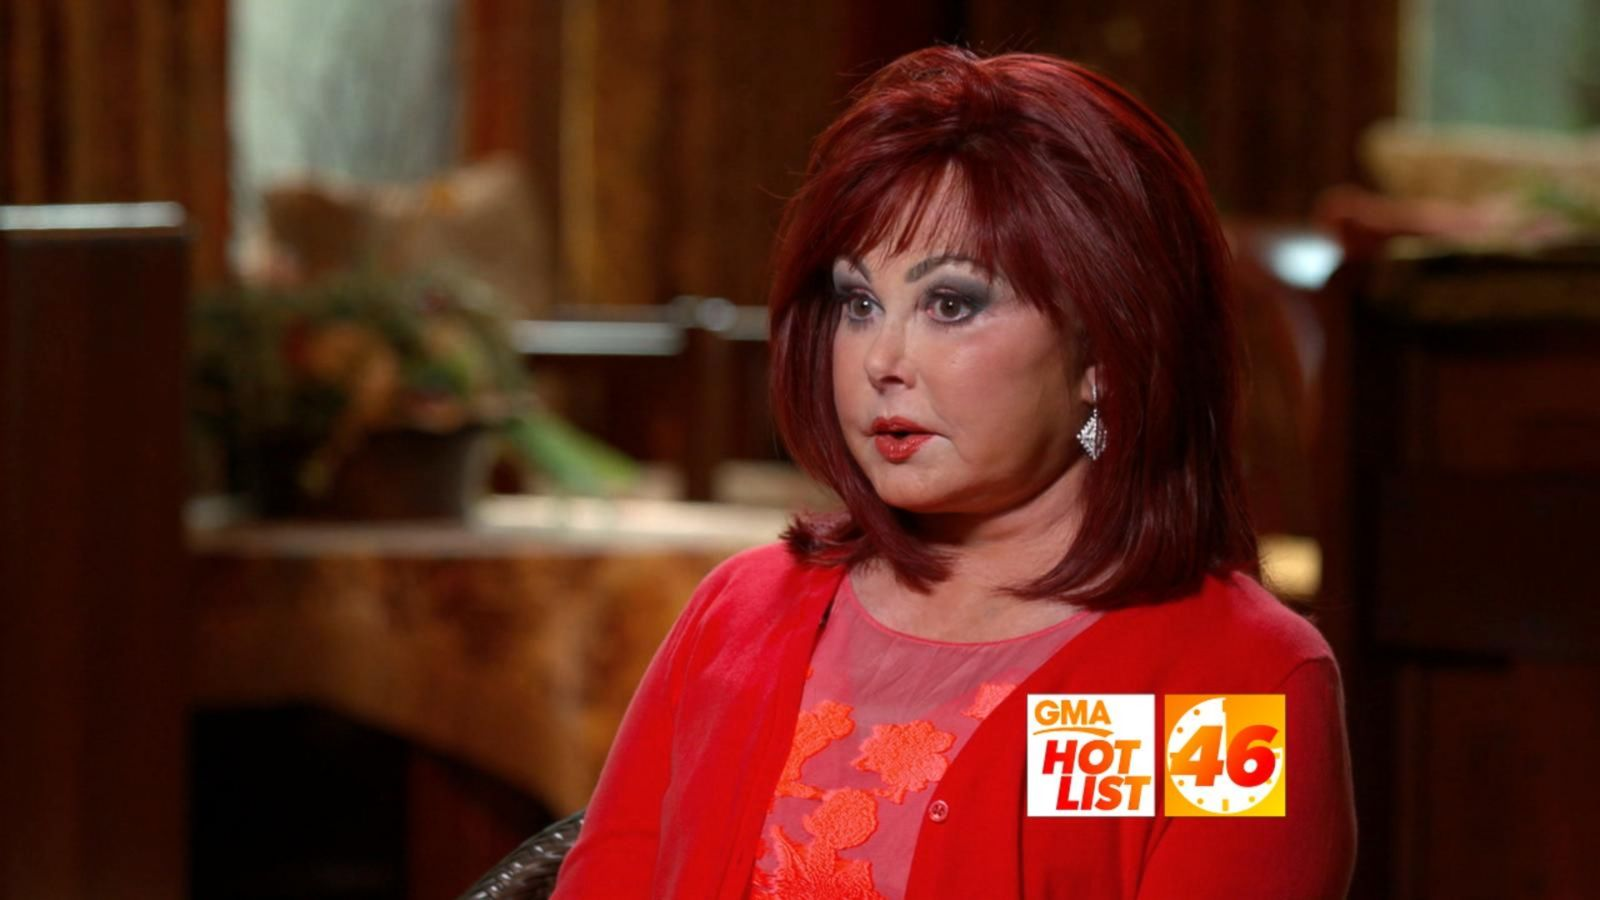 VIDEO: 'GMA' Hot List: Naomi Judd Reveals Battle With 'Extreme' Depression